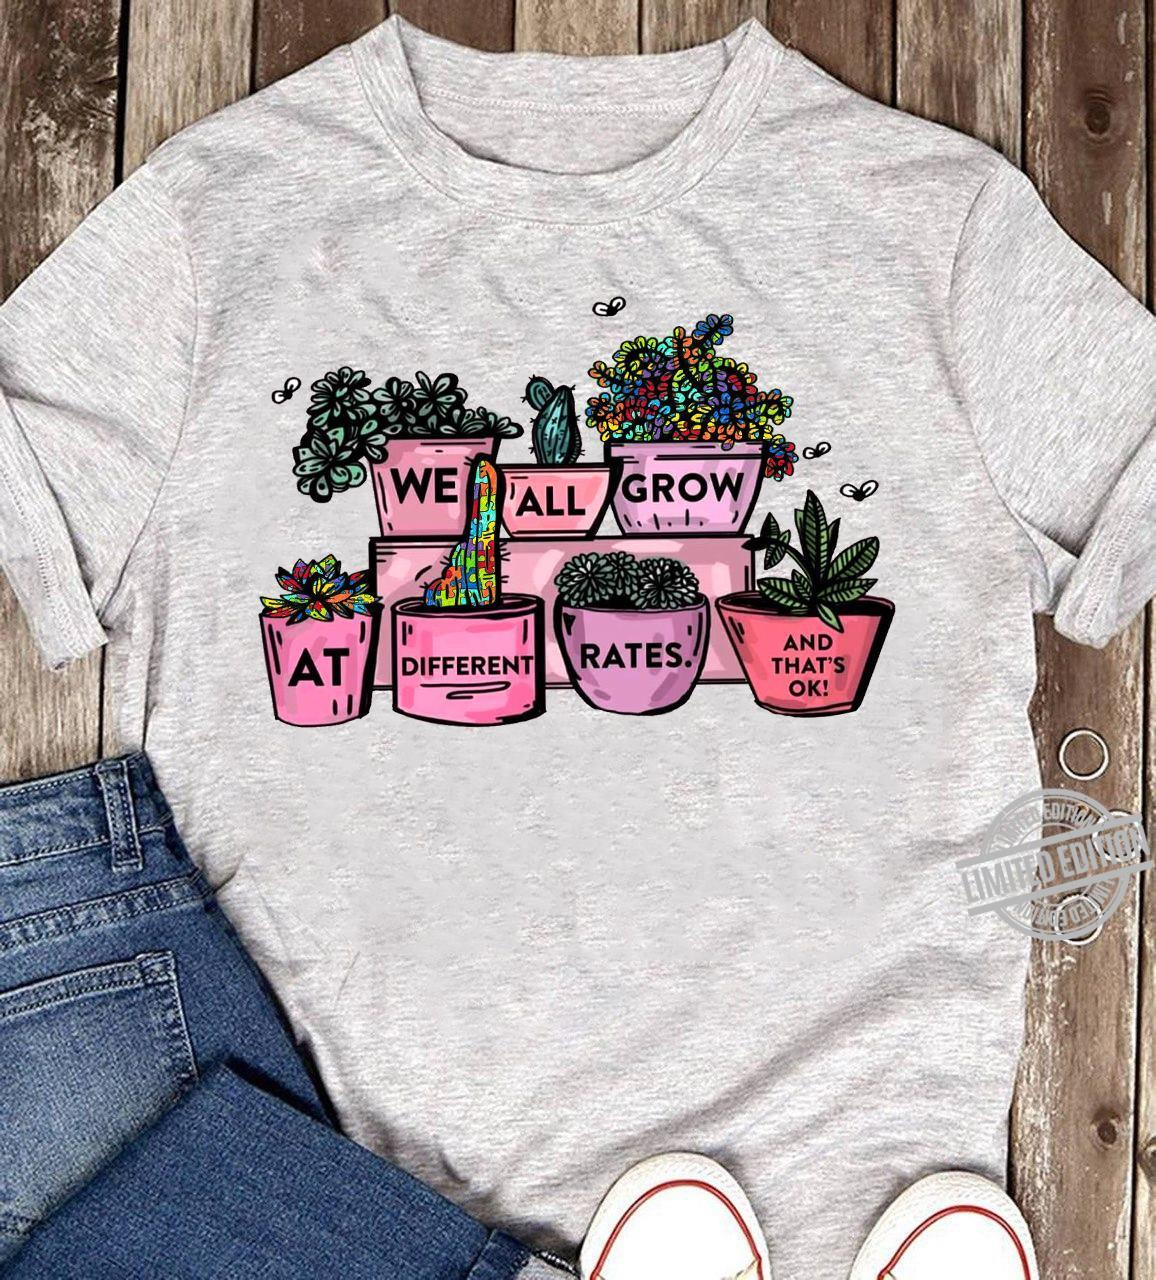 We All Grow At Different Rates And That Ok Shirt